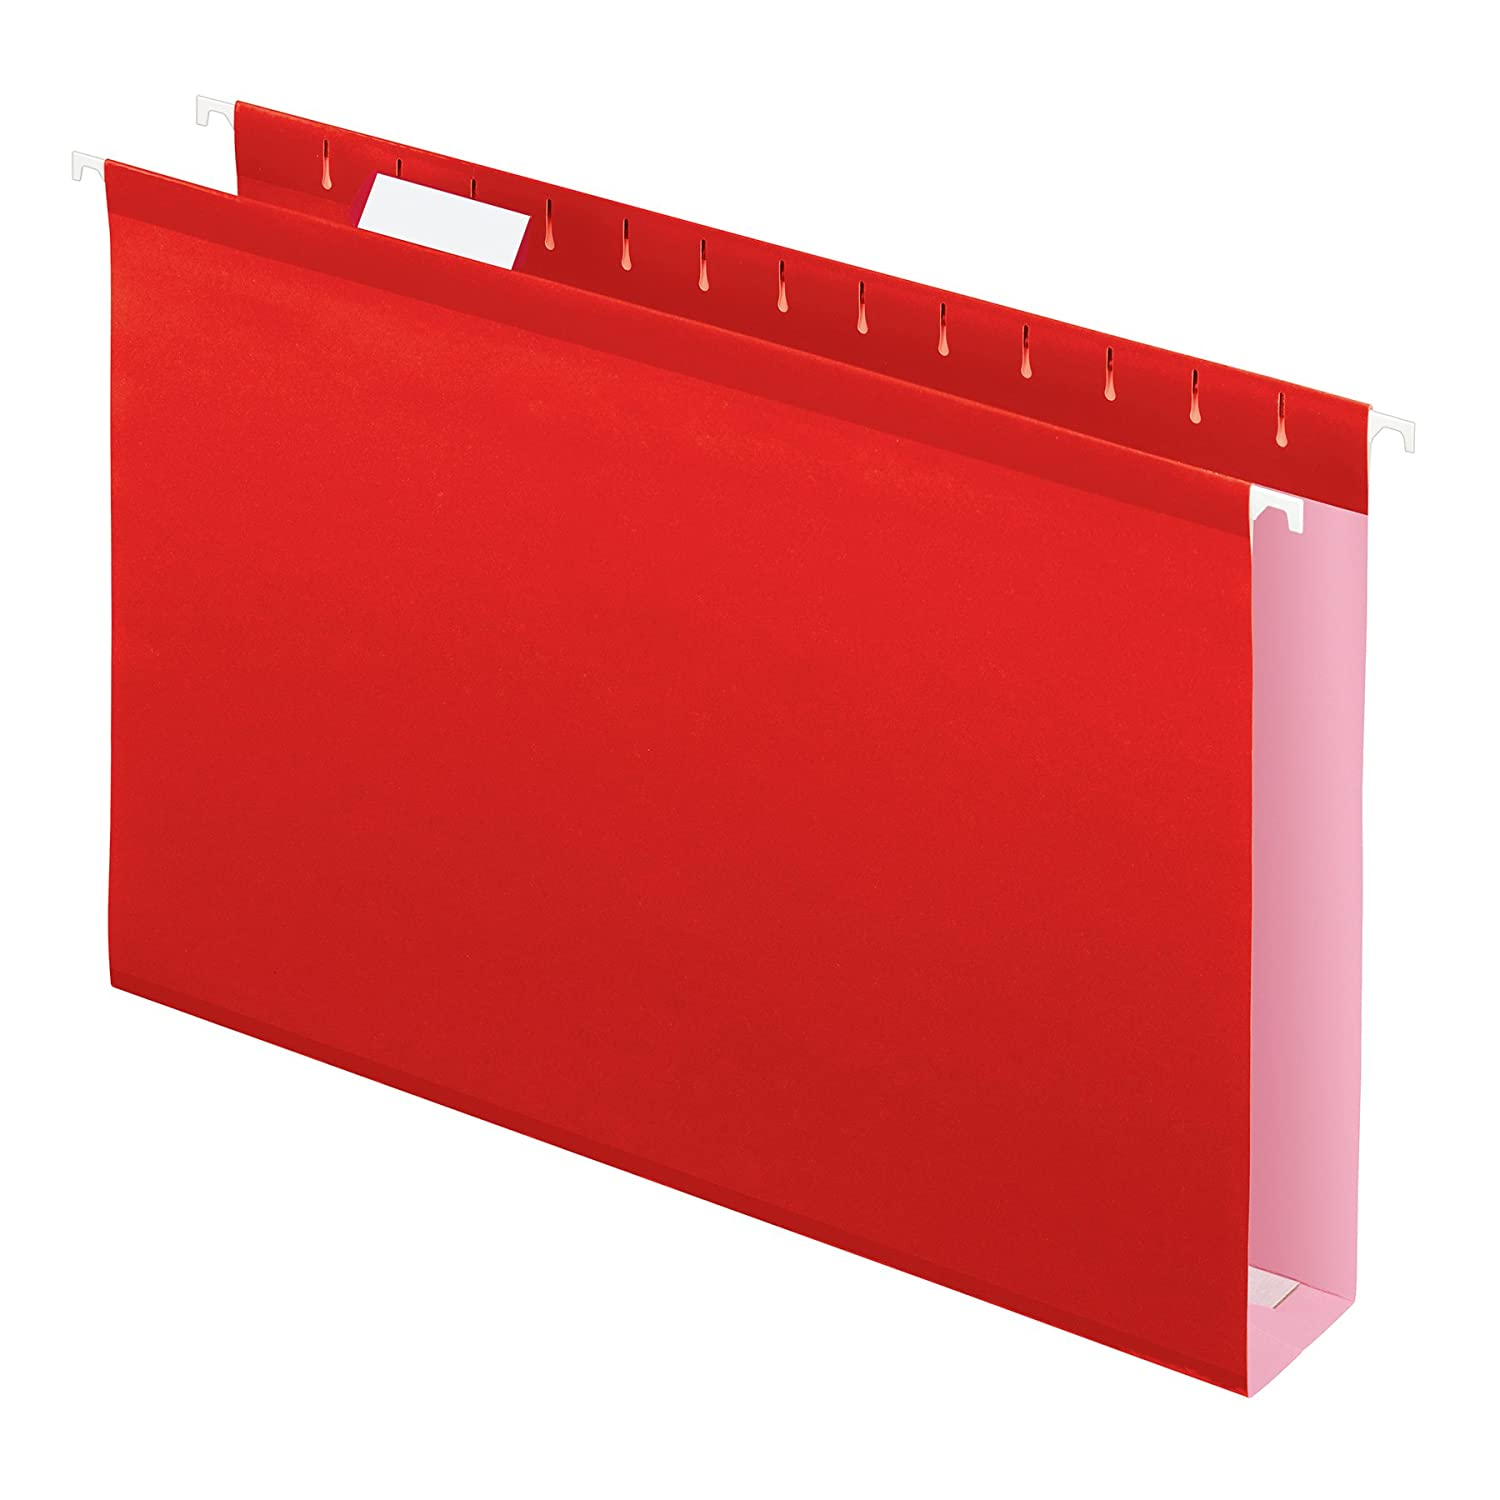 Pendaflex Extra Capacity Reinforced Hanging Folders, Legal Size, Assorted Colors, 25 per Box (04153X2 ASST)